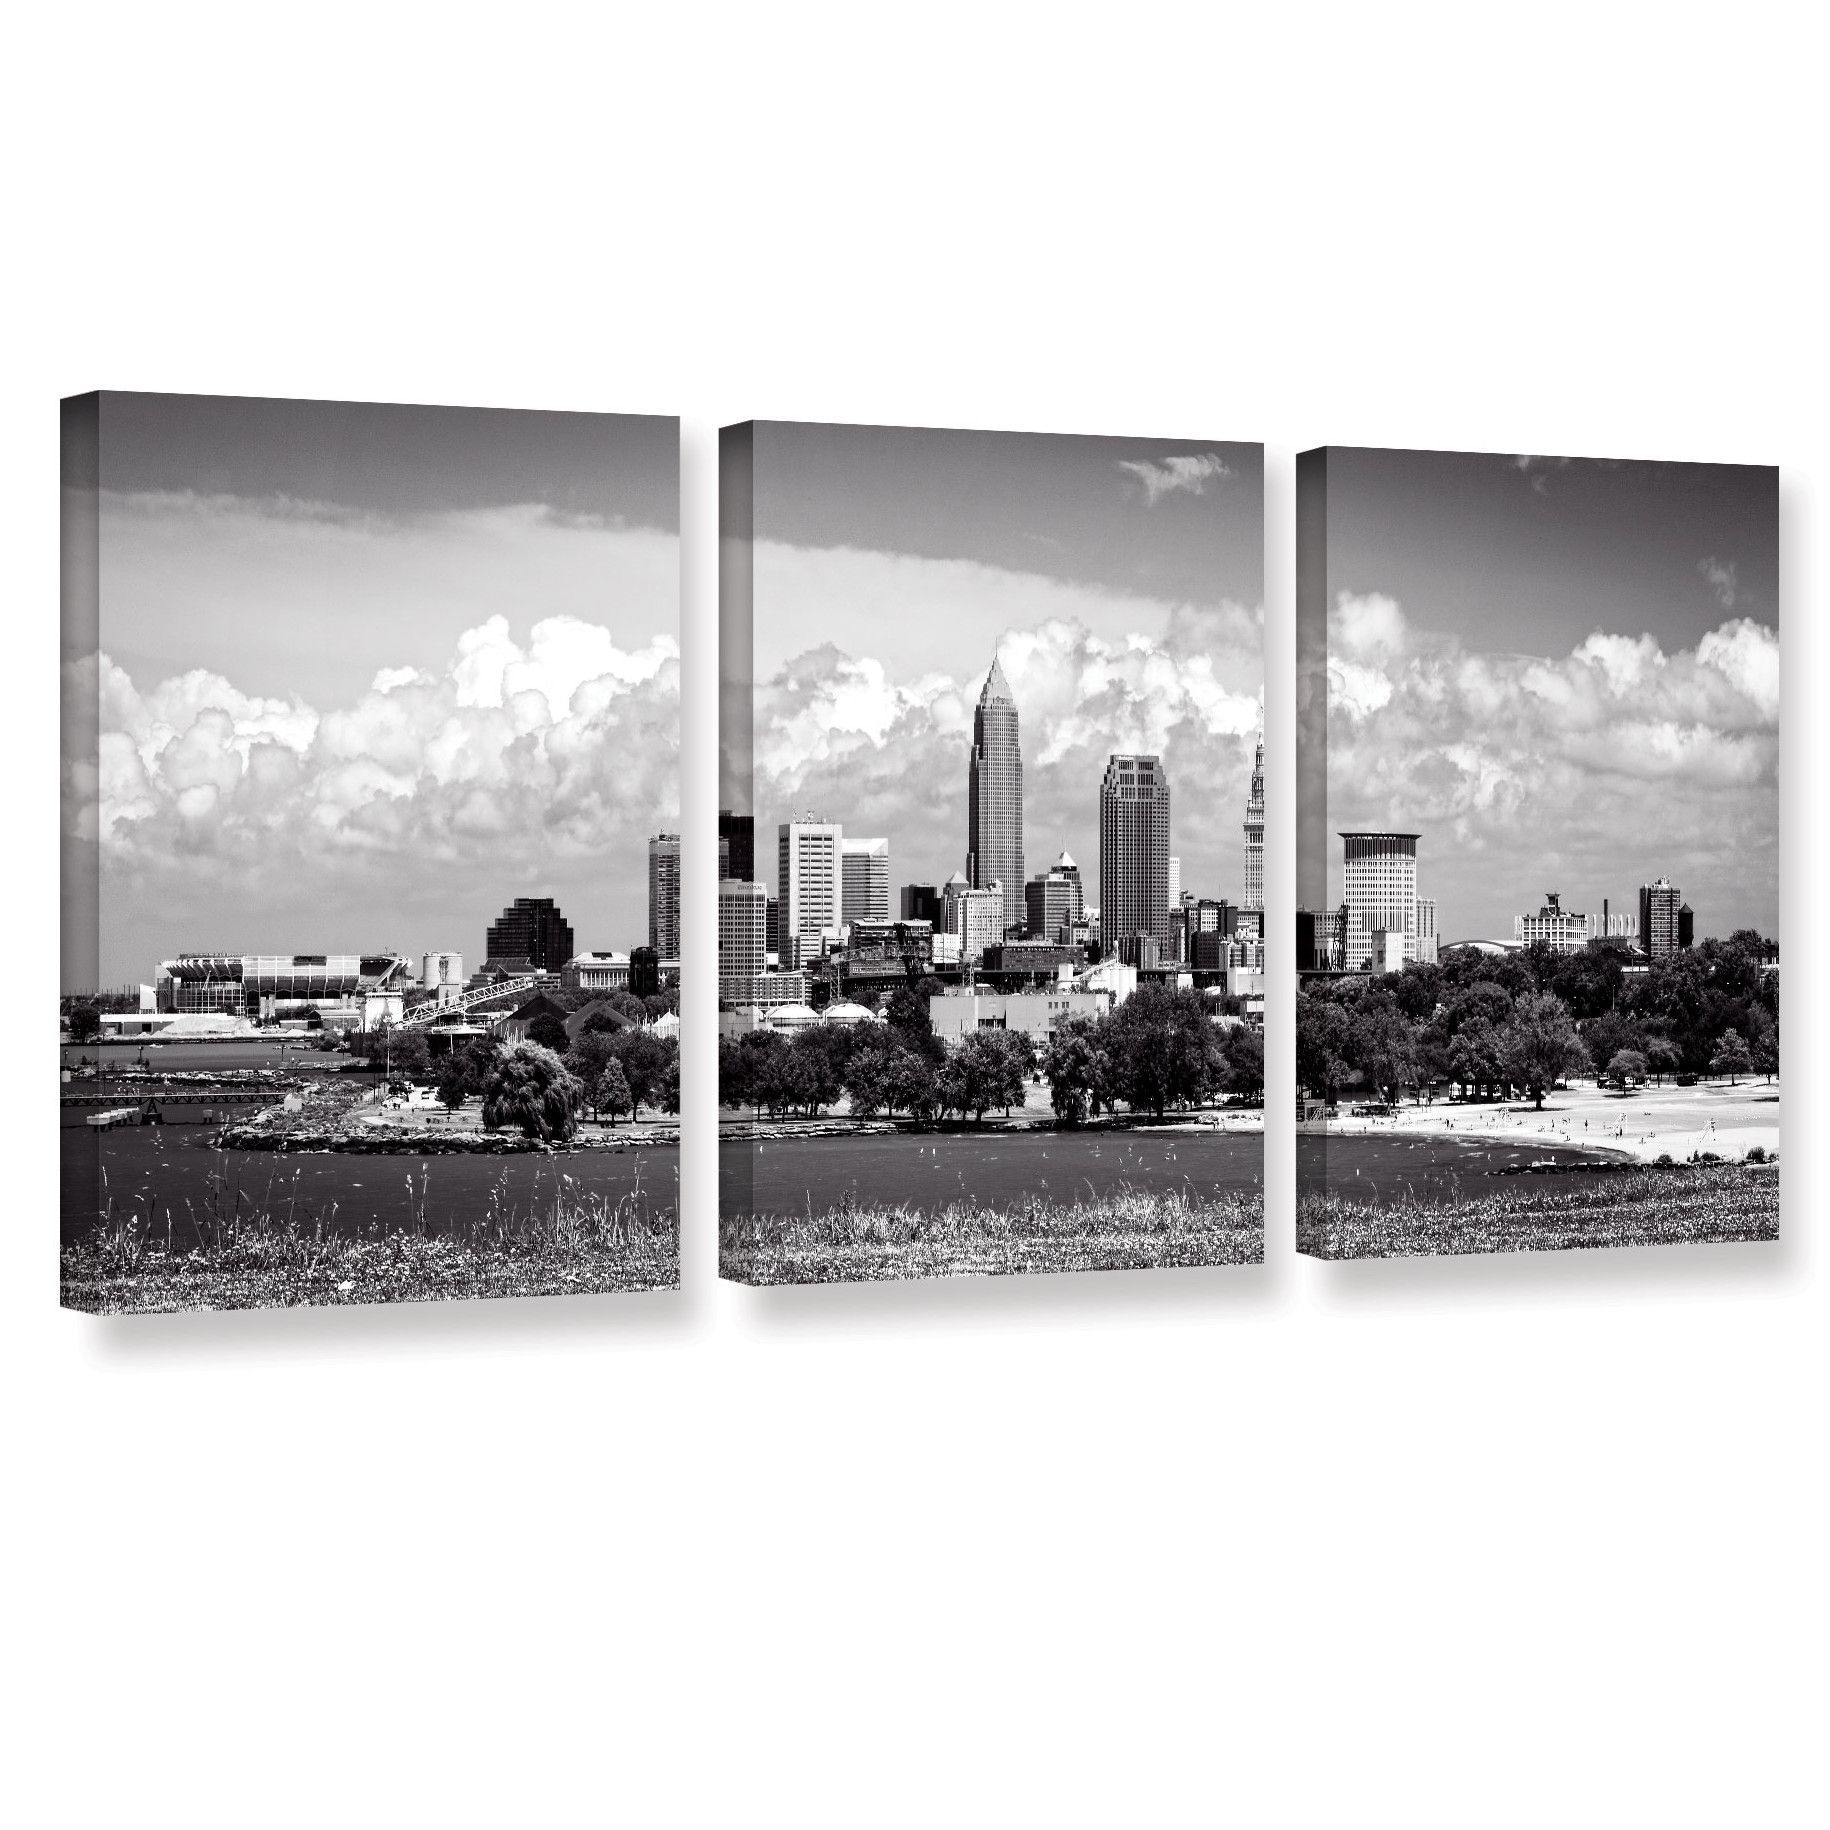 Cleveland Pano 1 by Cody York 3 Piece Photographic Print on Gallery-Wrapped Canvas Set